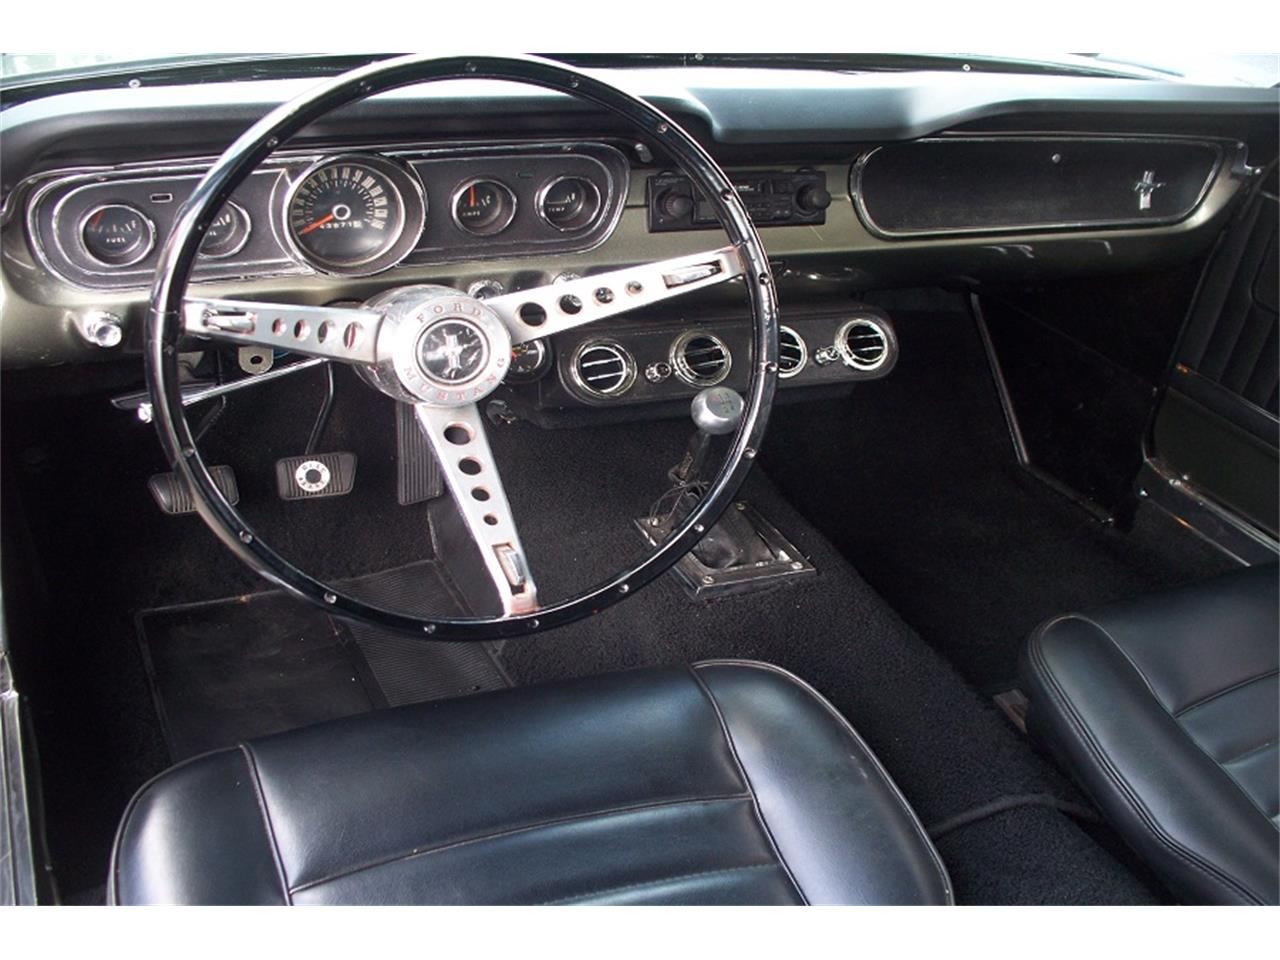 Ford Mustang 1965 v8 289 prix tout compris